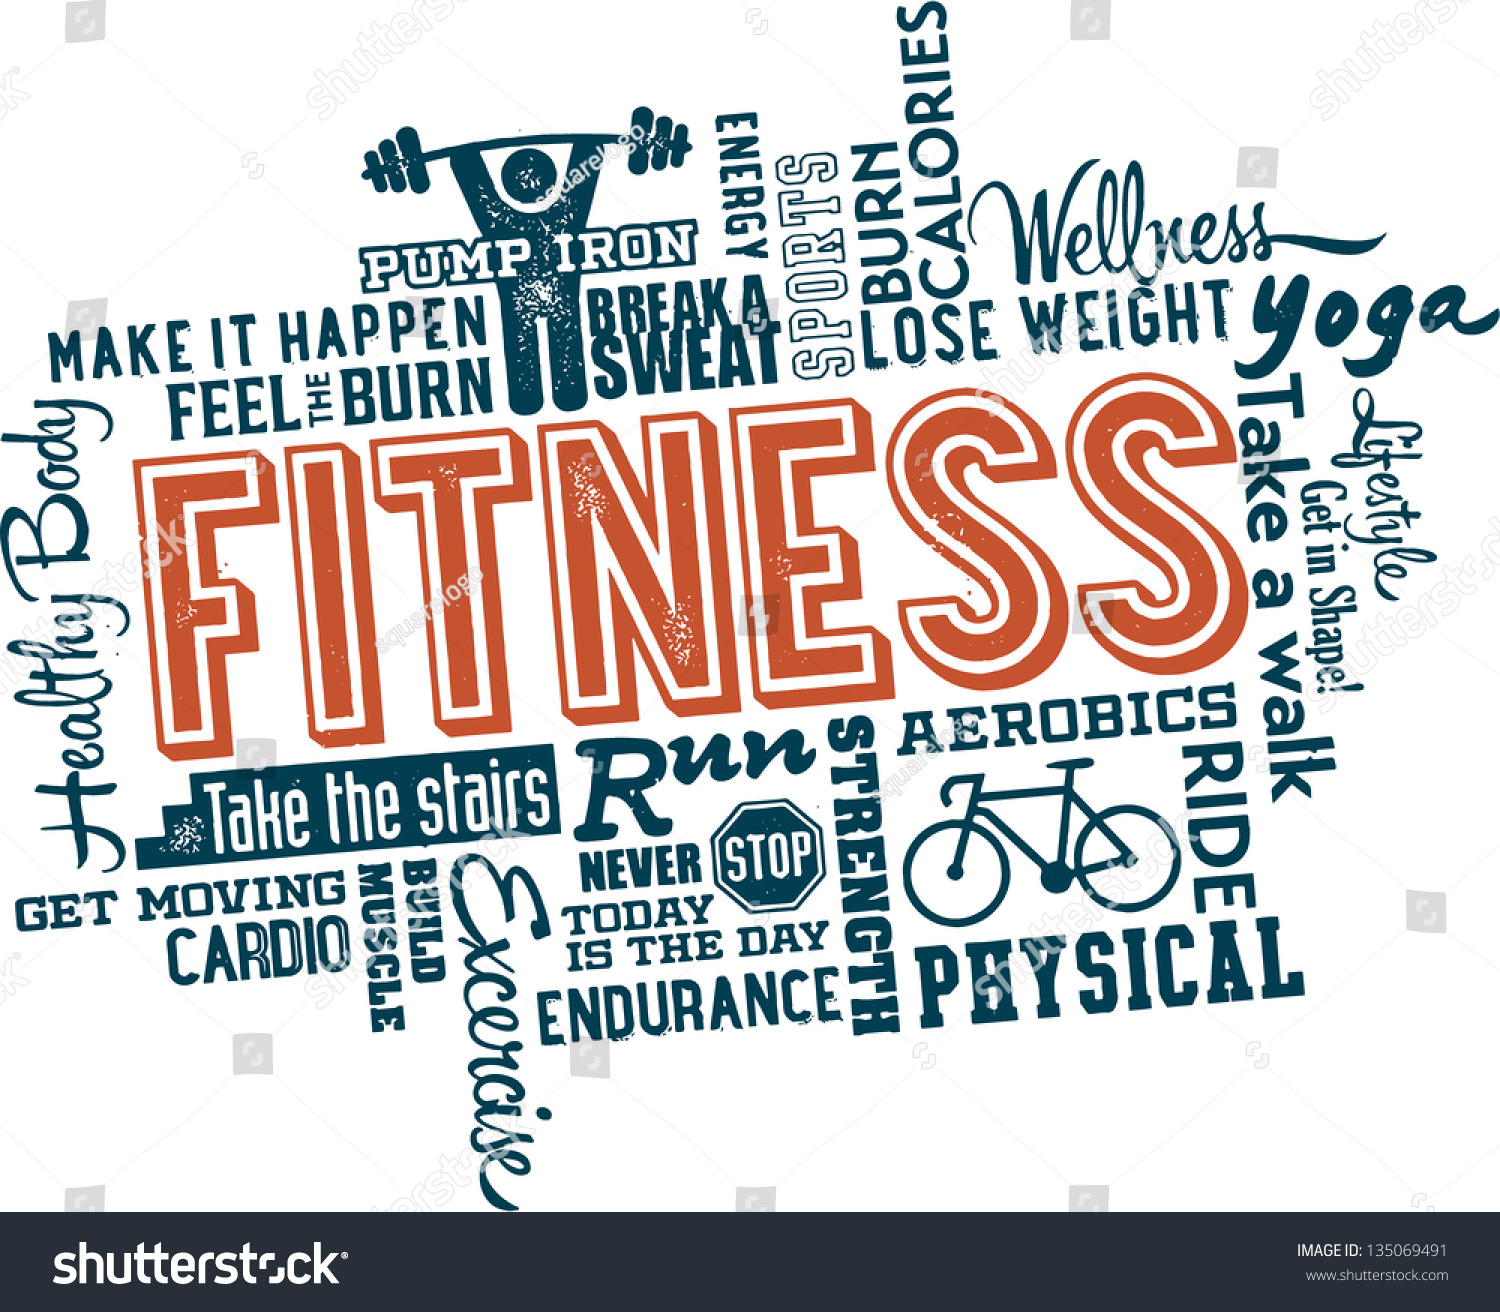 Fitness Healthy Exercise Word Icon Cloud Stock Vector Royalty Free 135069491